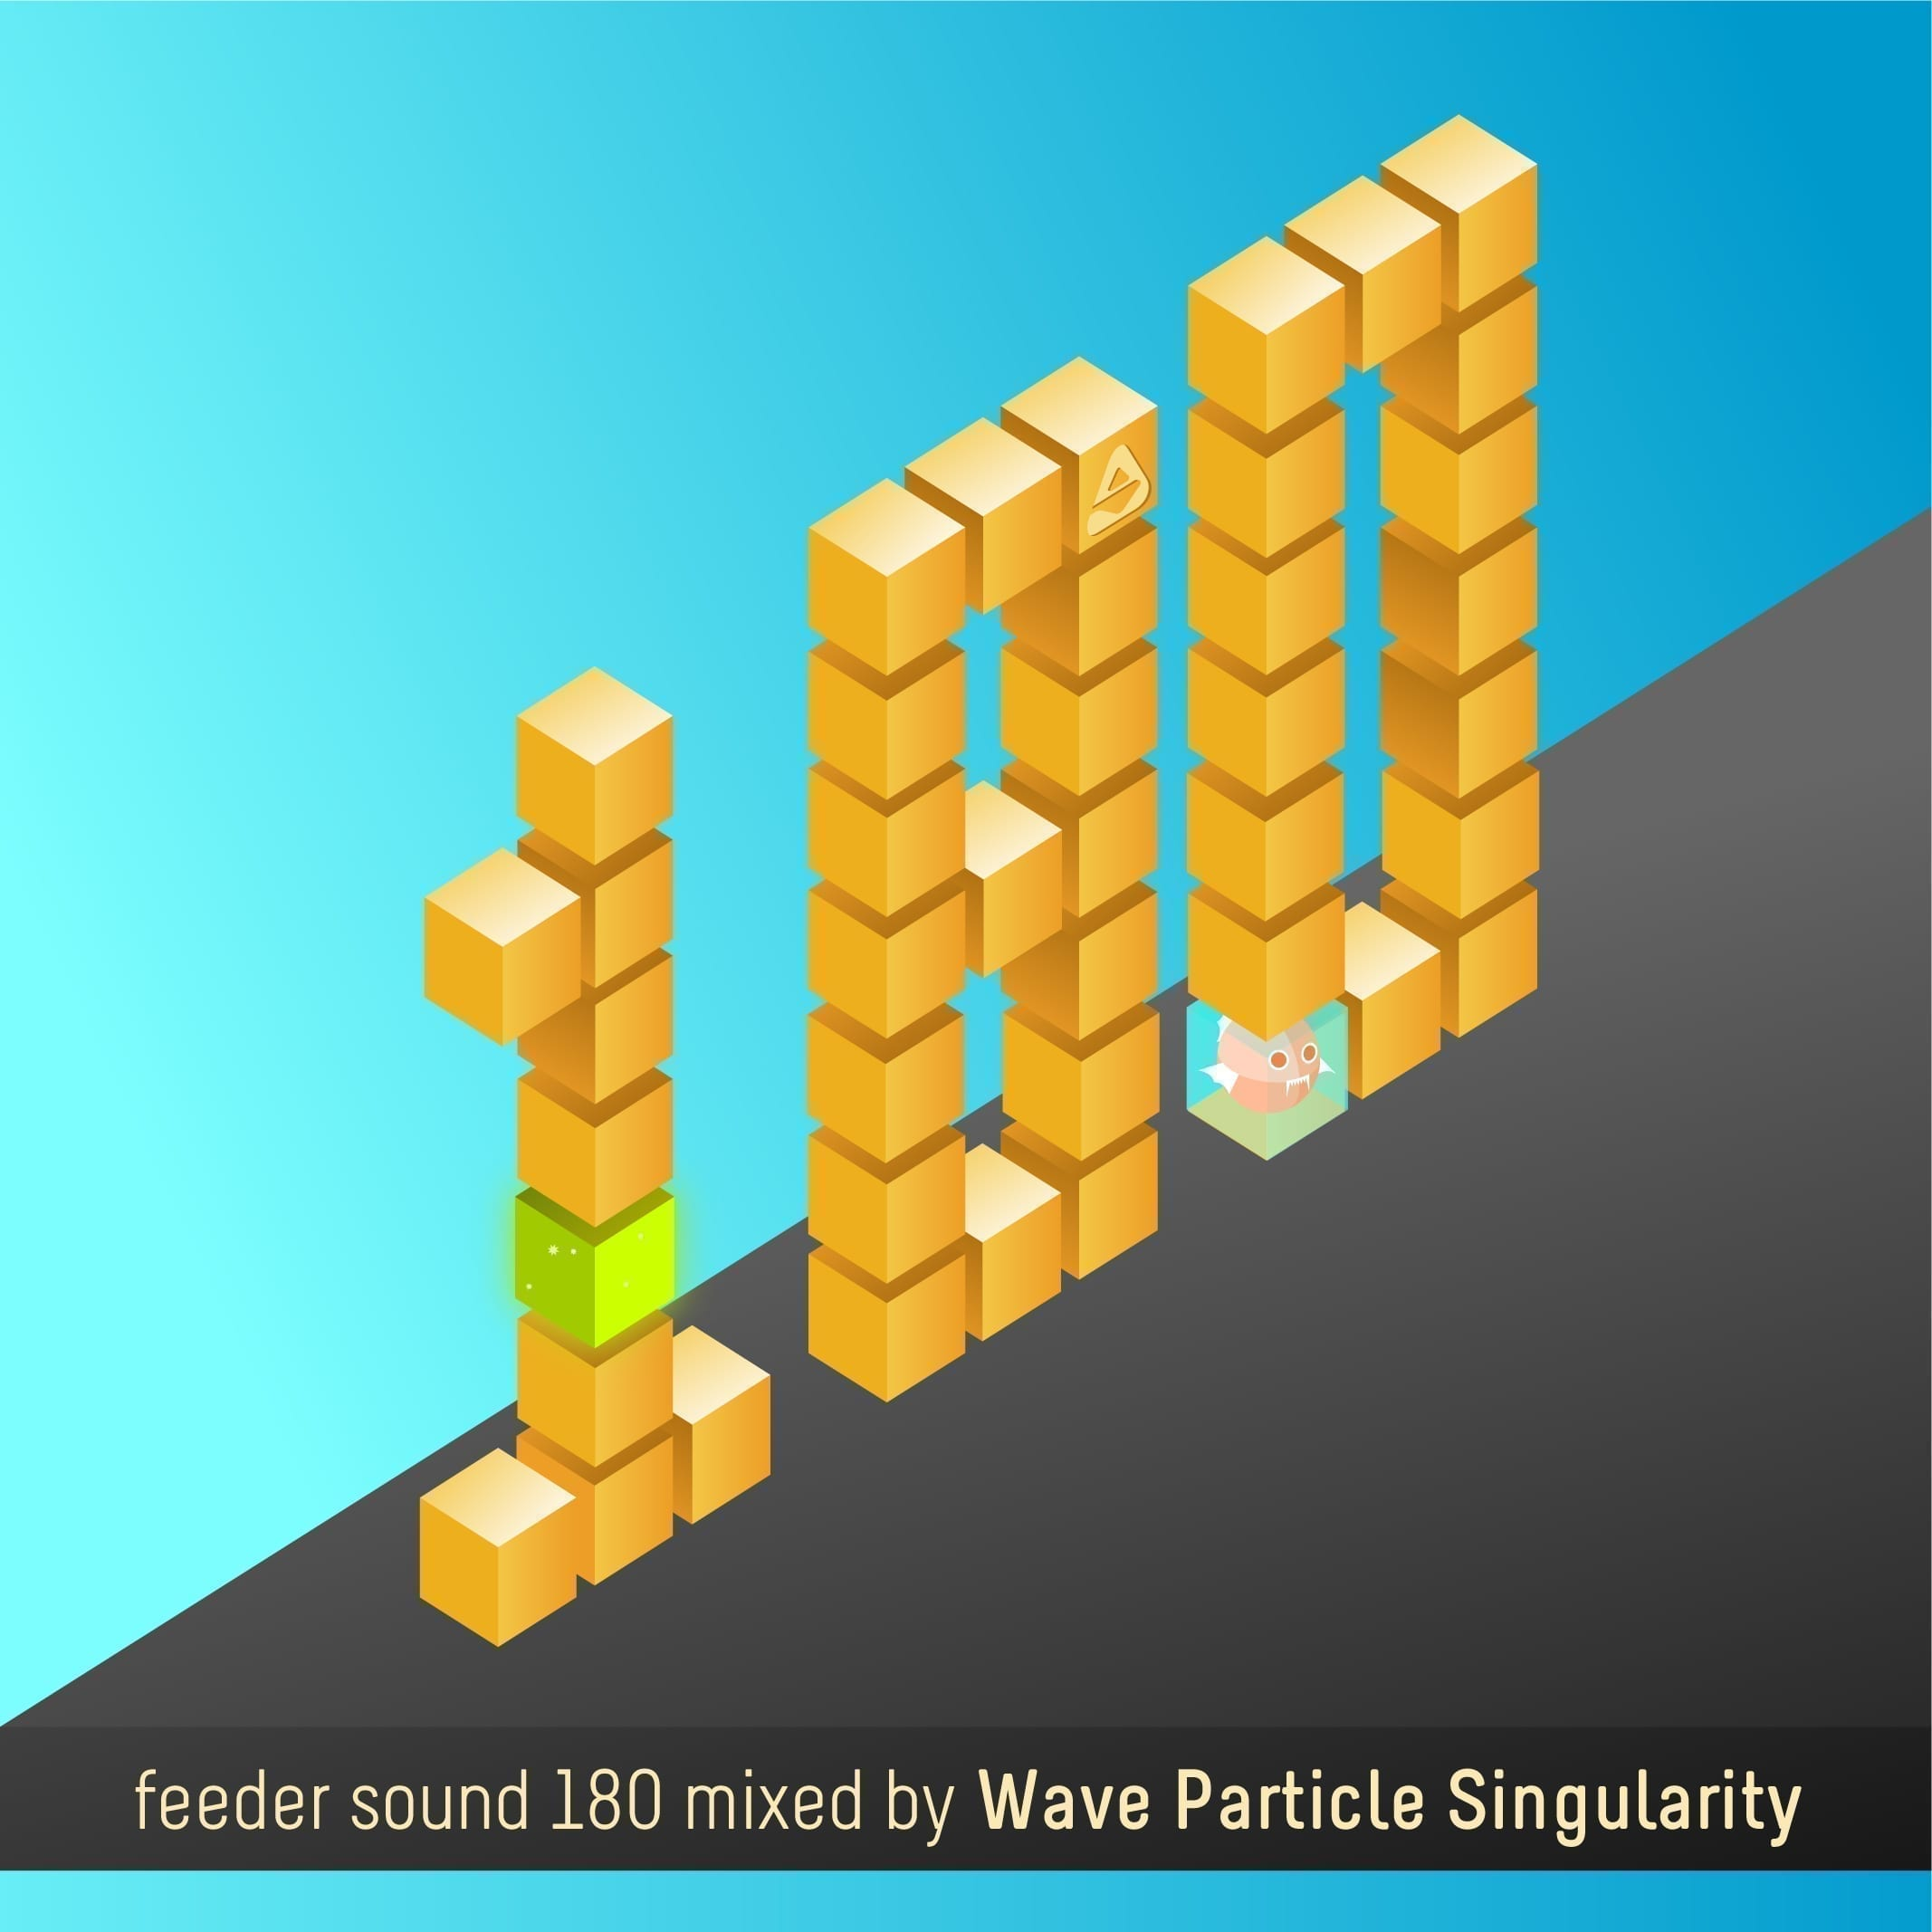 feeder sound 180 mixed by Wave Particle Singularity